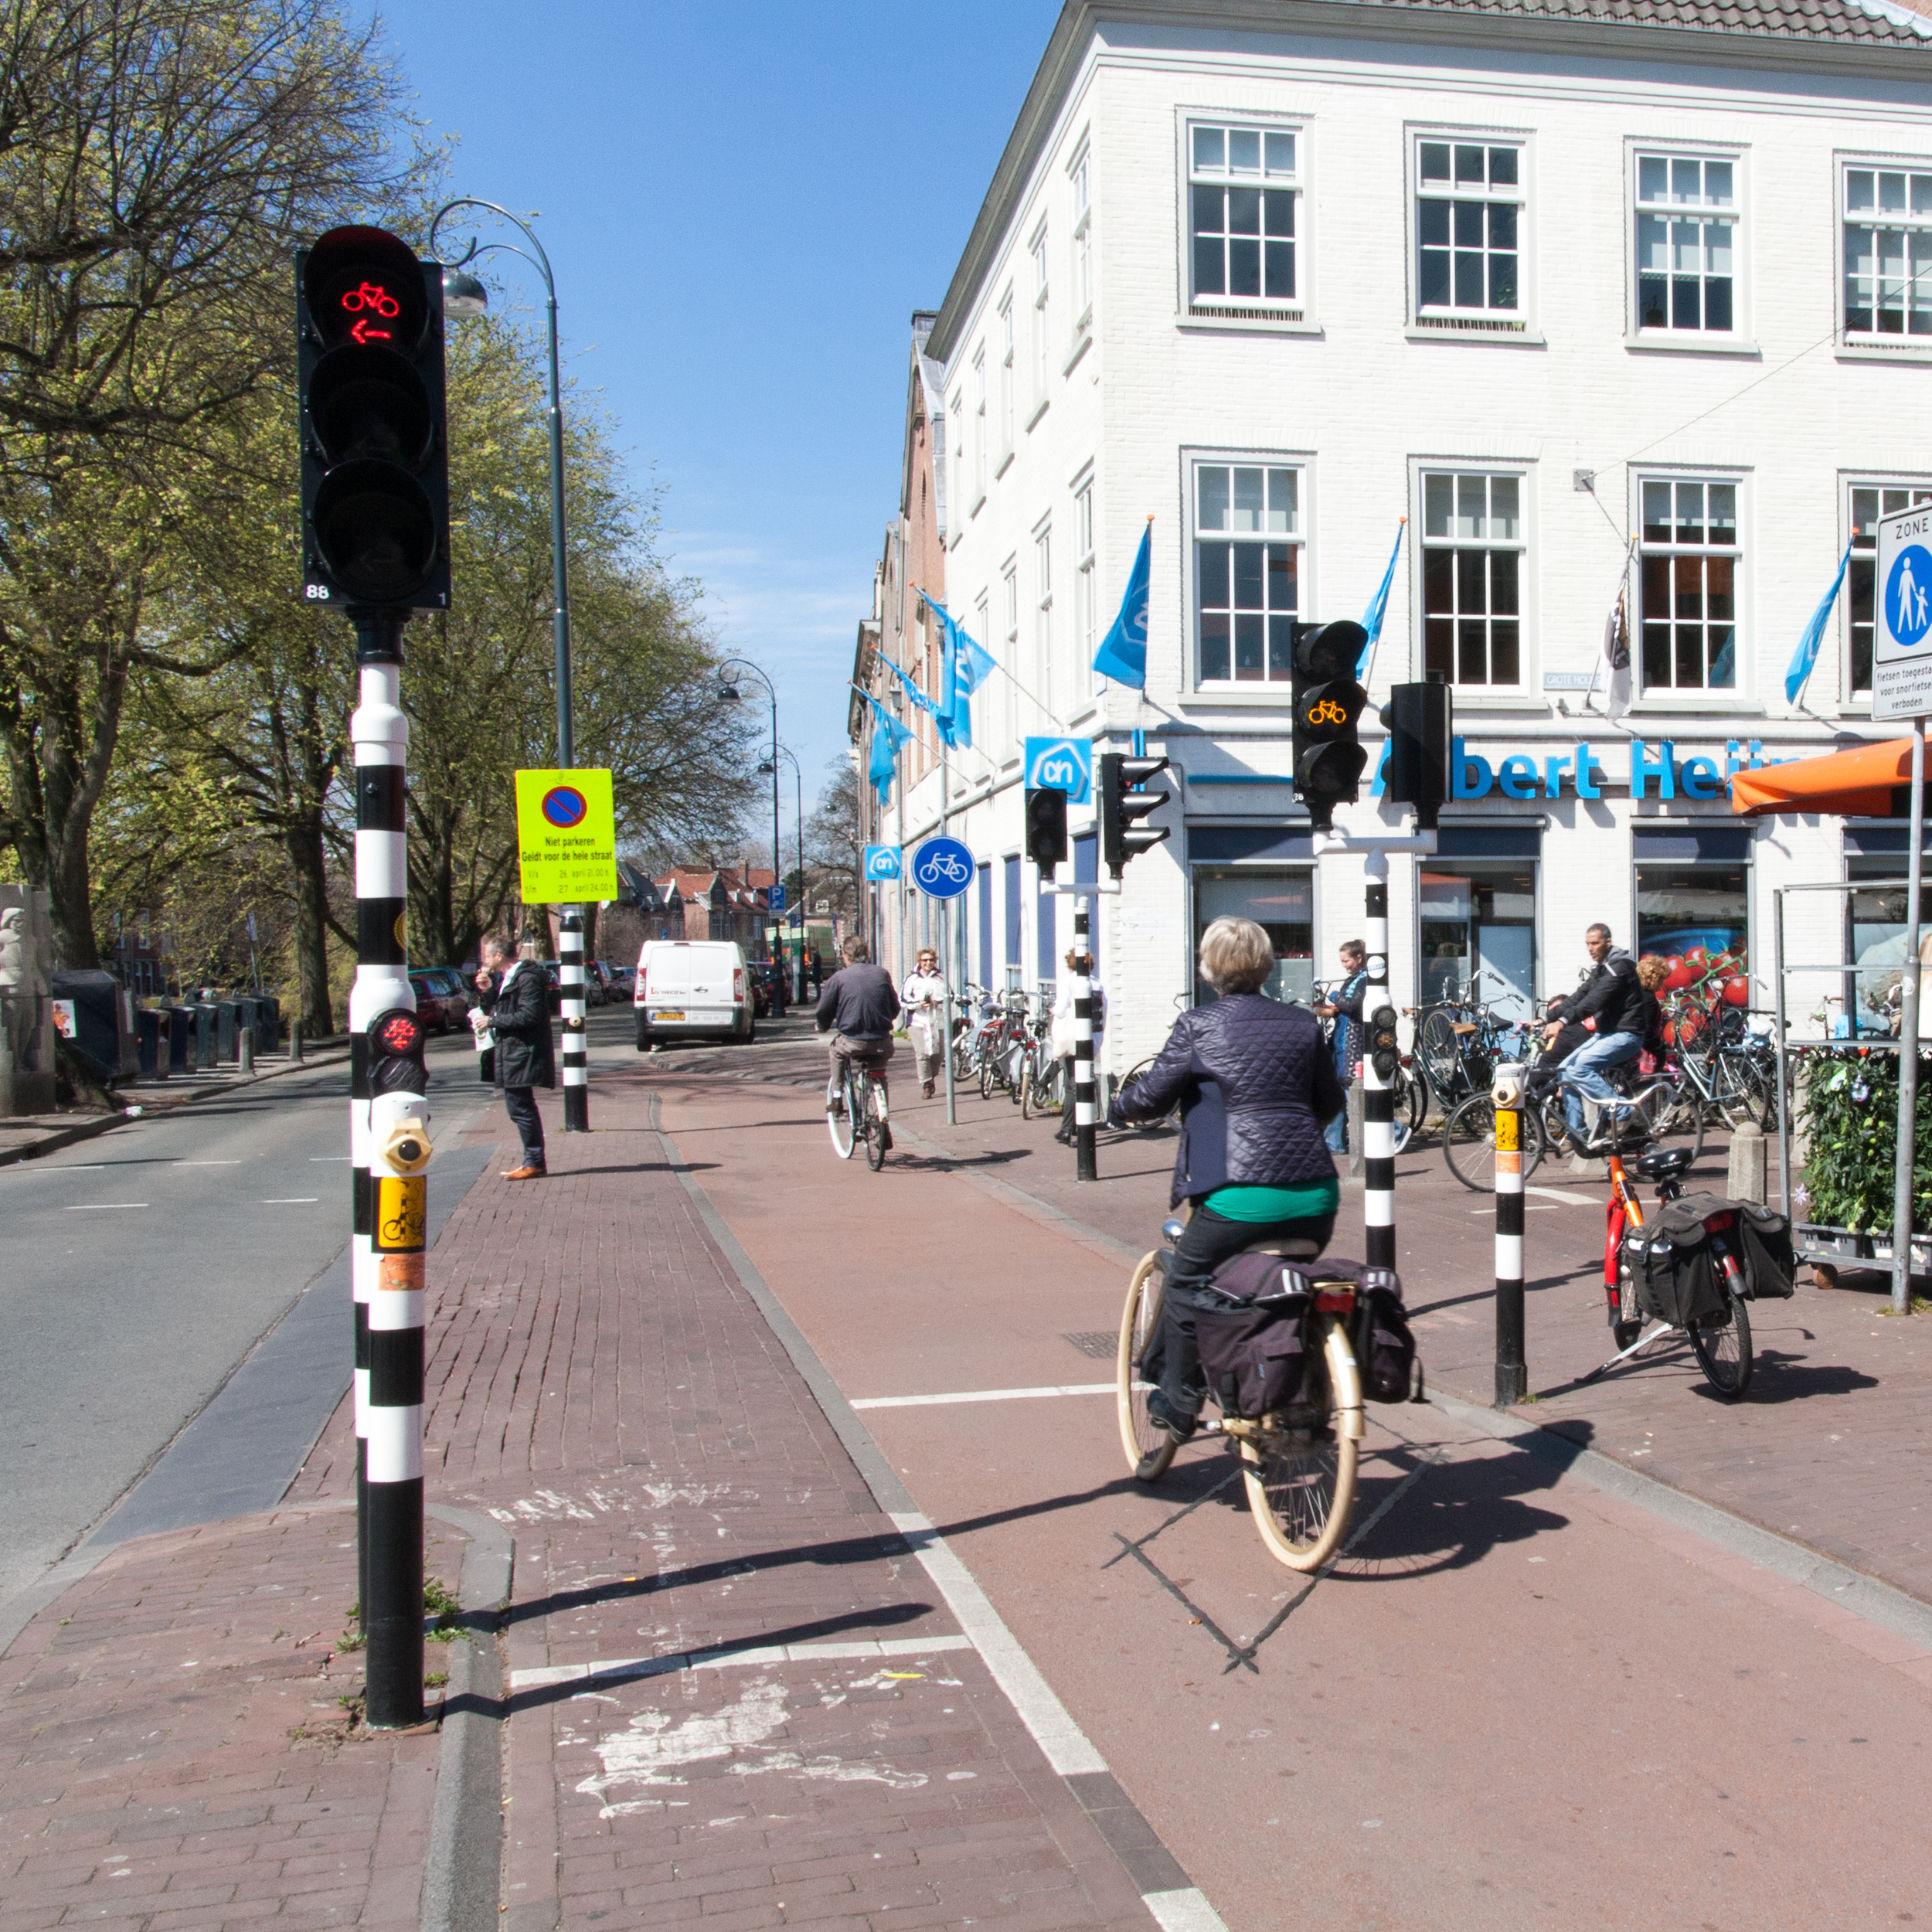 These traffic lights for cyclists turning left and going straight are at most busyintersections where cyclists and pedestrians interact.